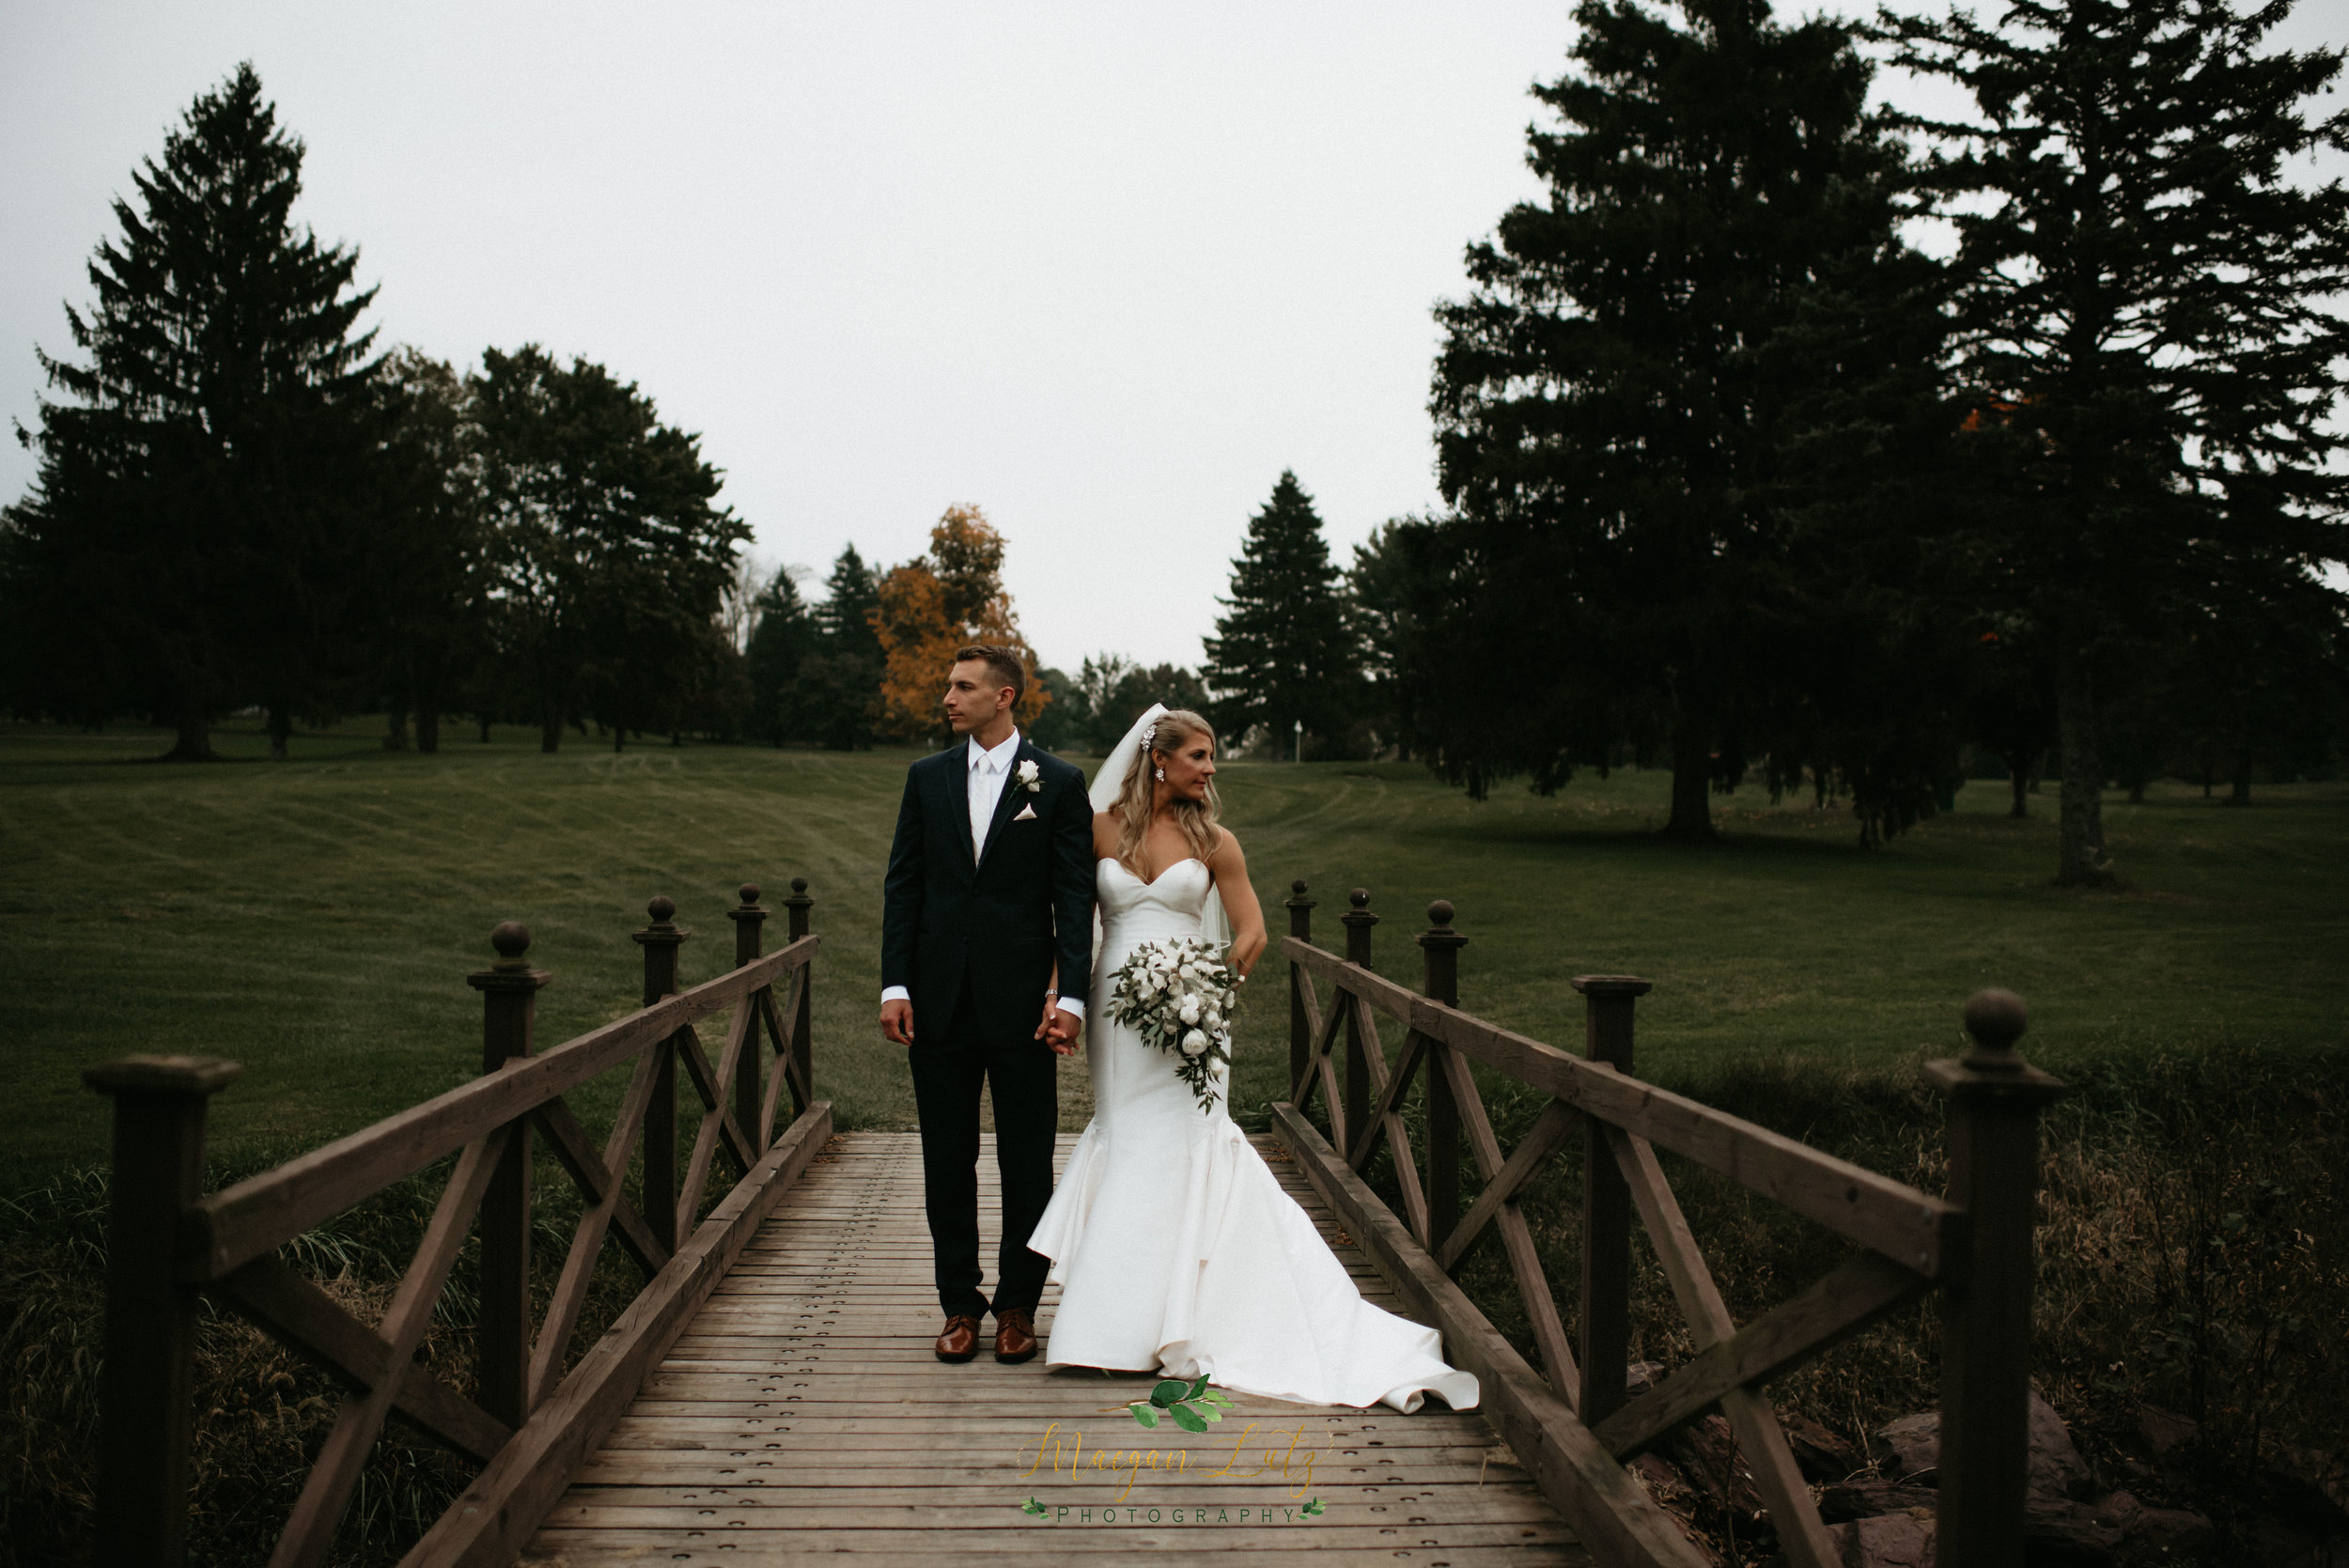 NEPA and Central PA Wedding Photographer in Danville PA at the Barn at Frosty Valley